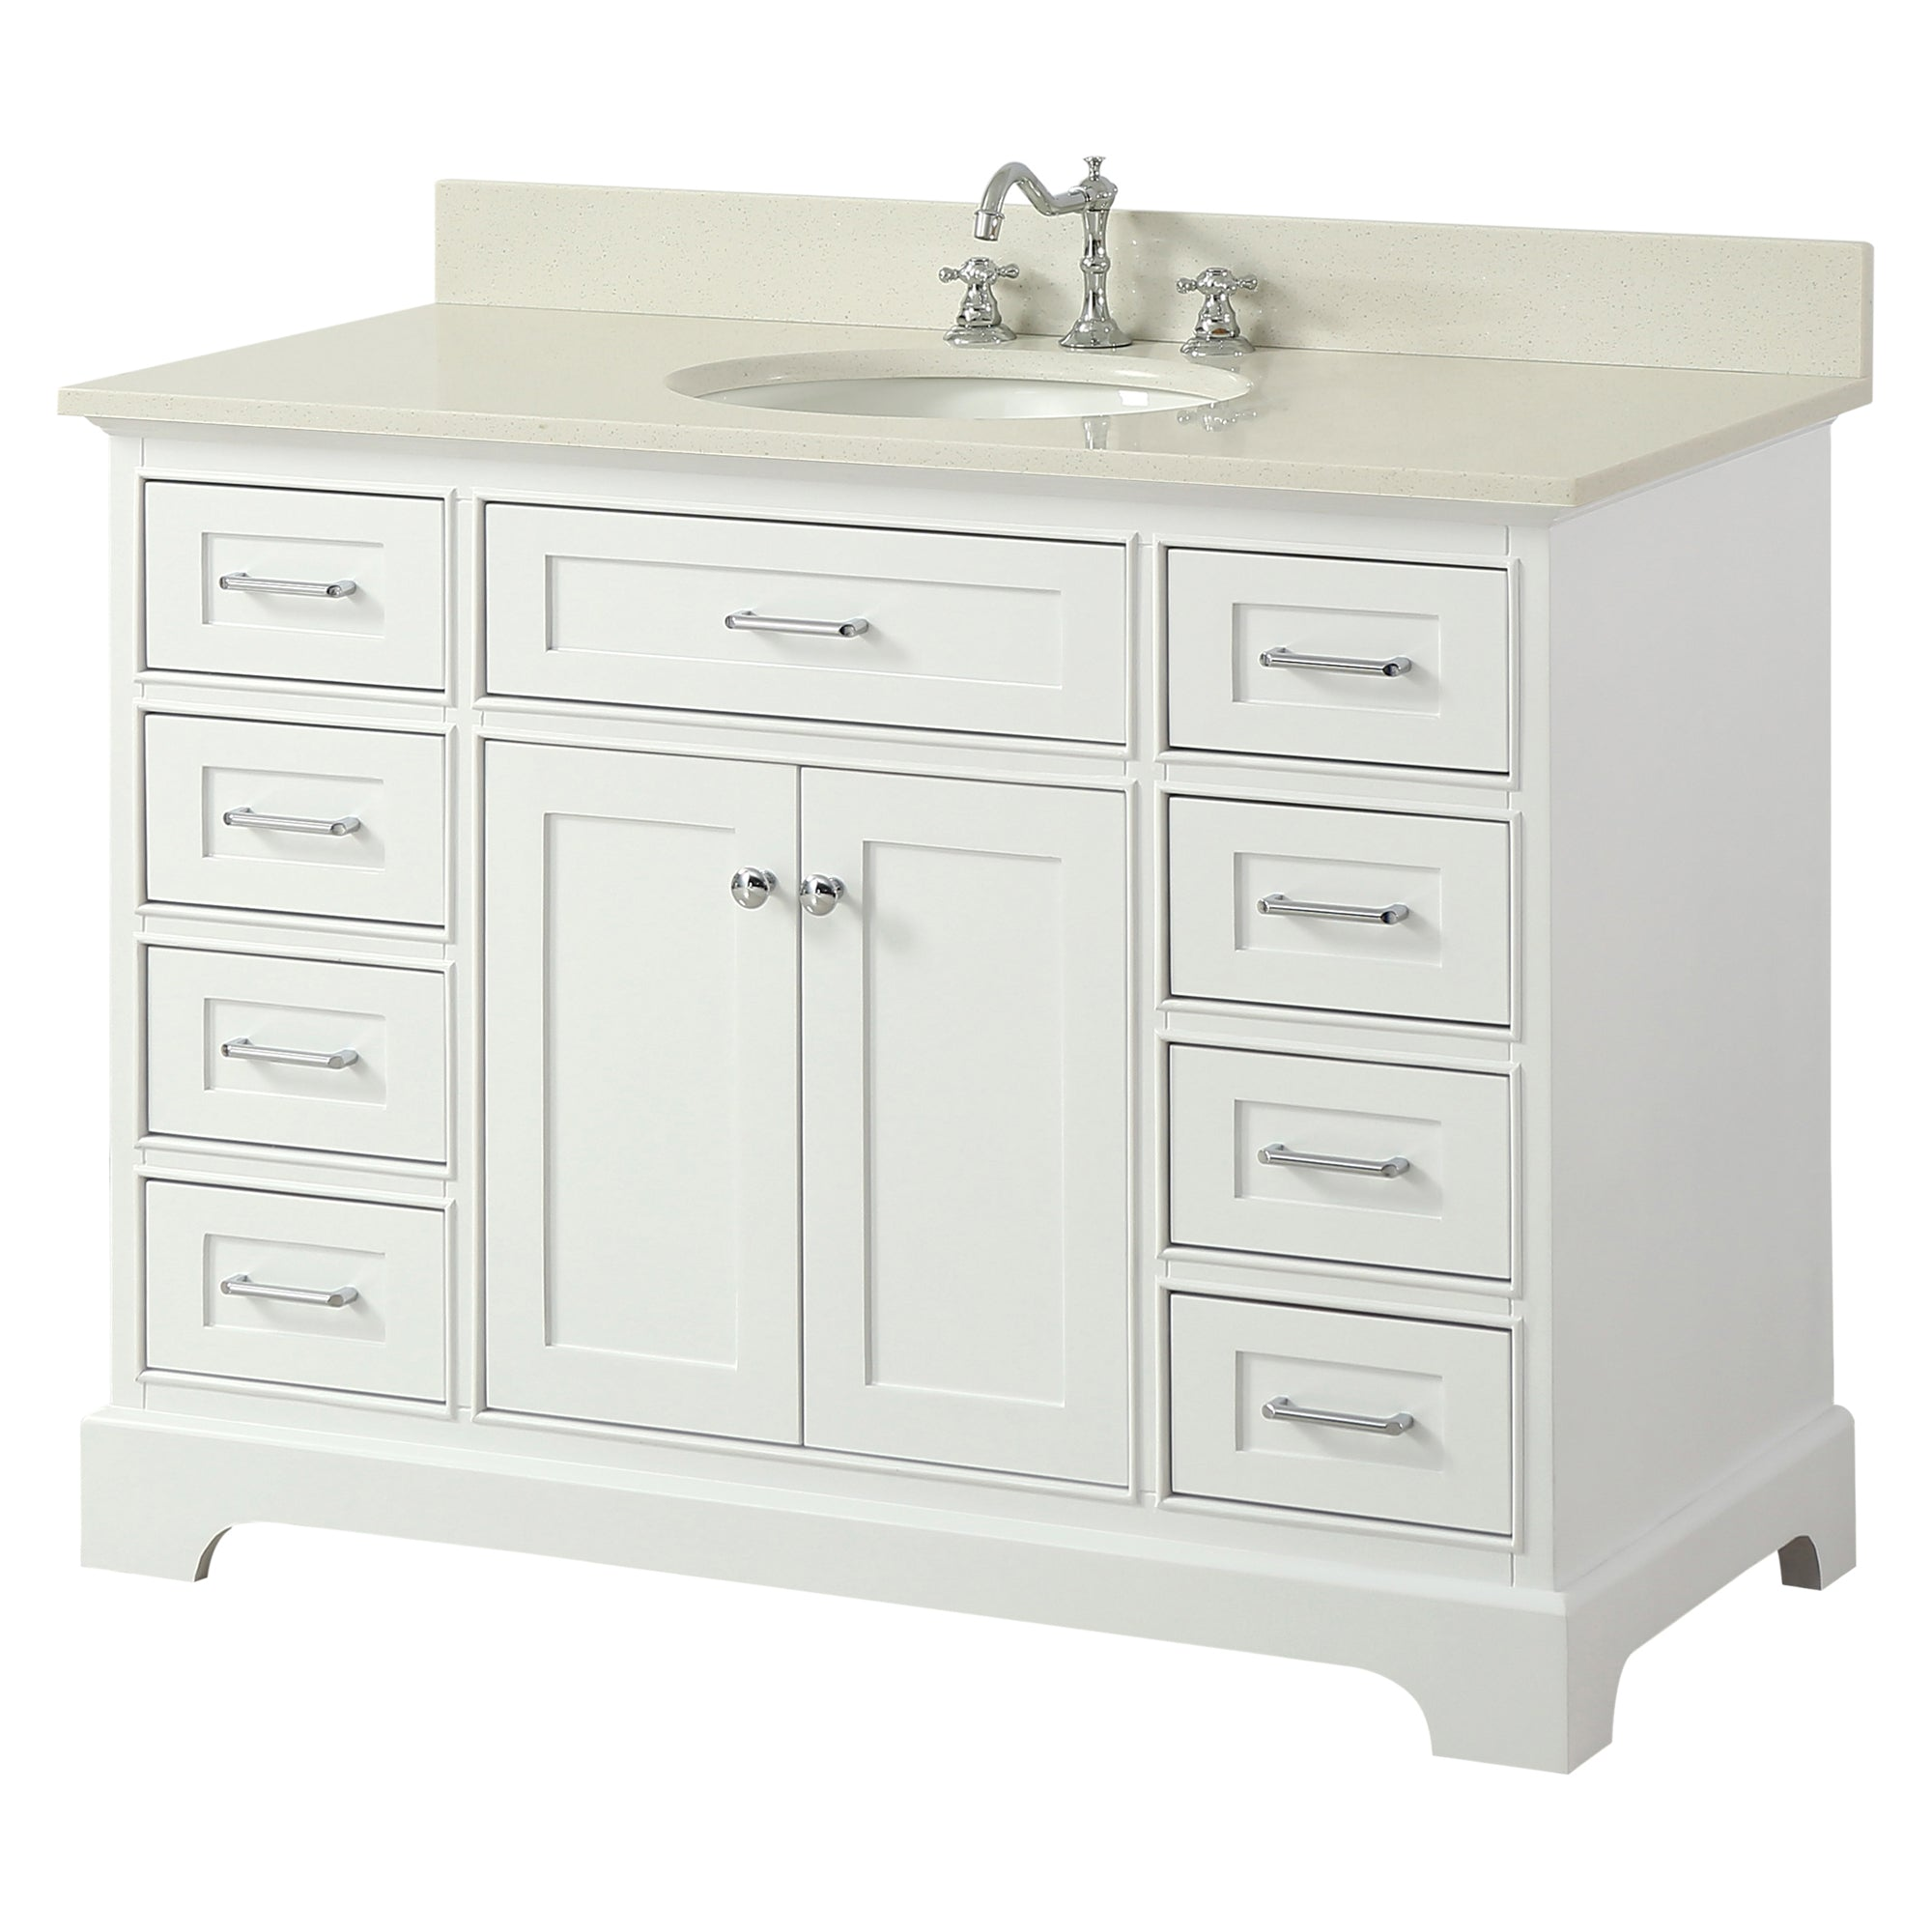 Inch Solid Wood White Bathroom Vanity Cabinet With White Quartz - Bathroom vanities under usd 200